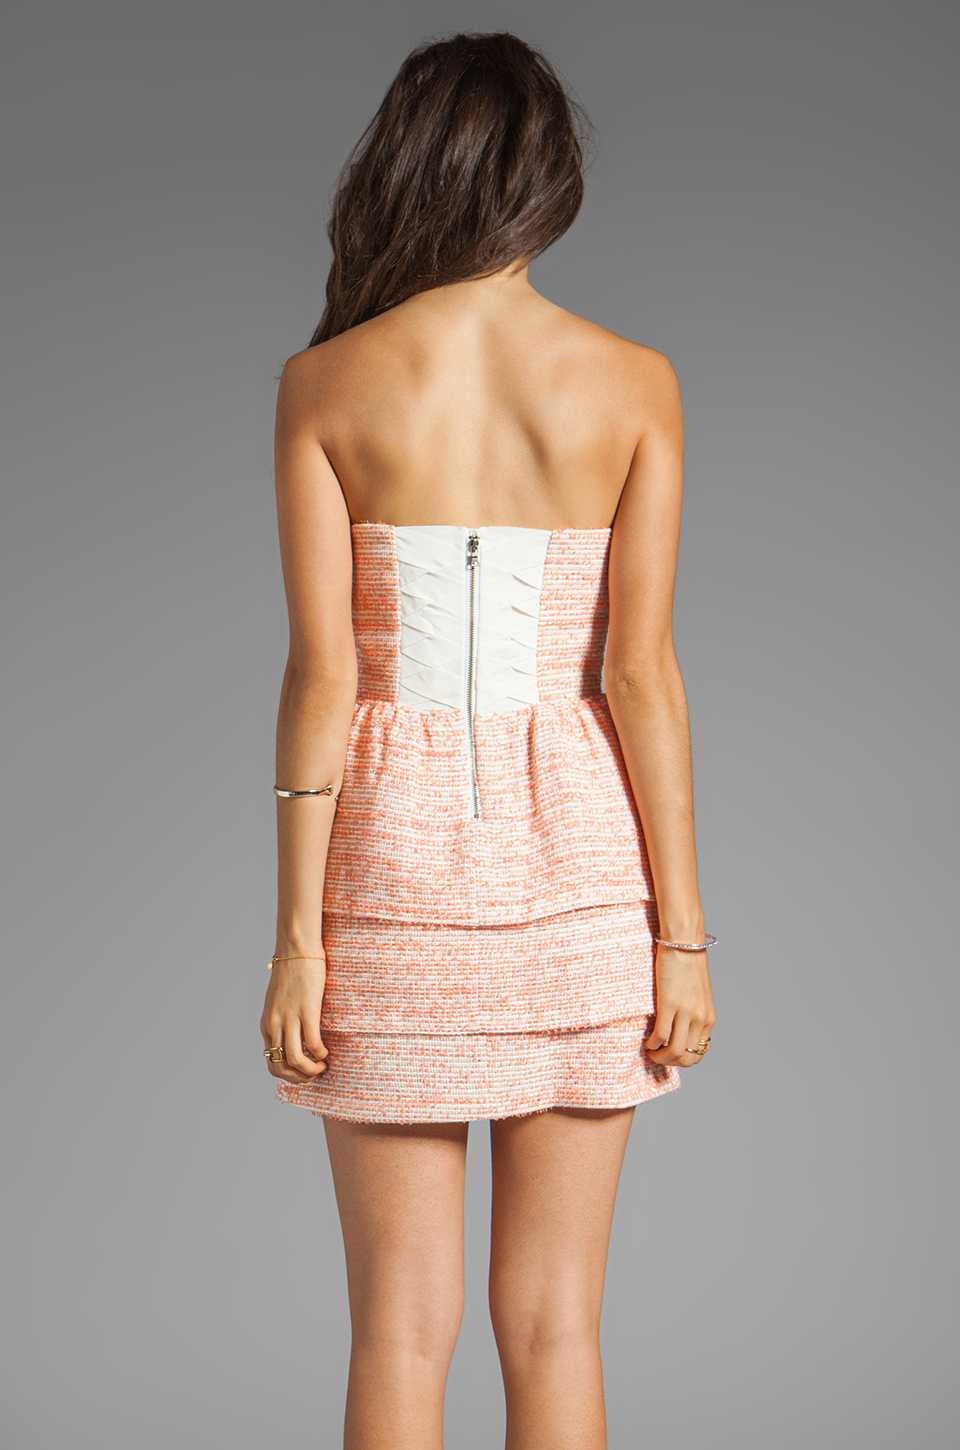 Alice + Olivia Shellyanne Bra Tank Tiered Skirt Dress in Orange